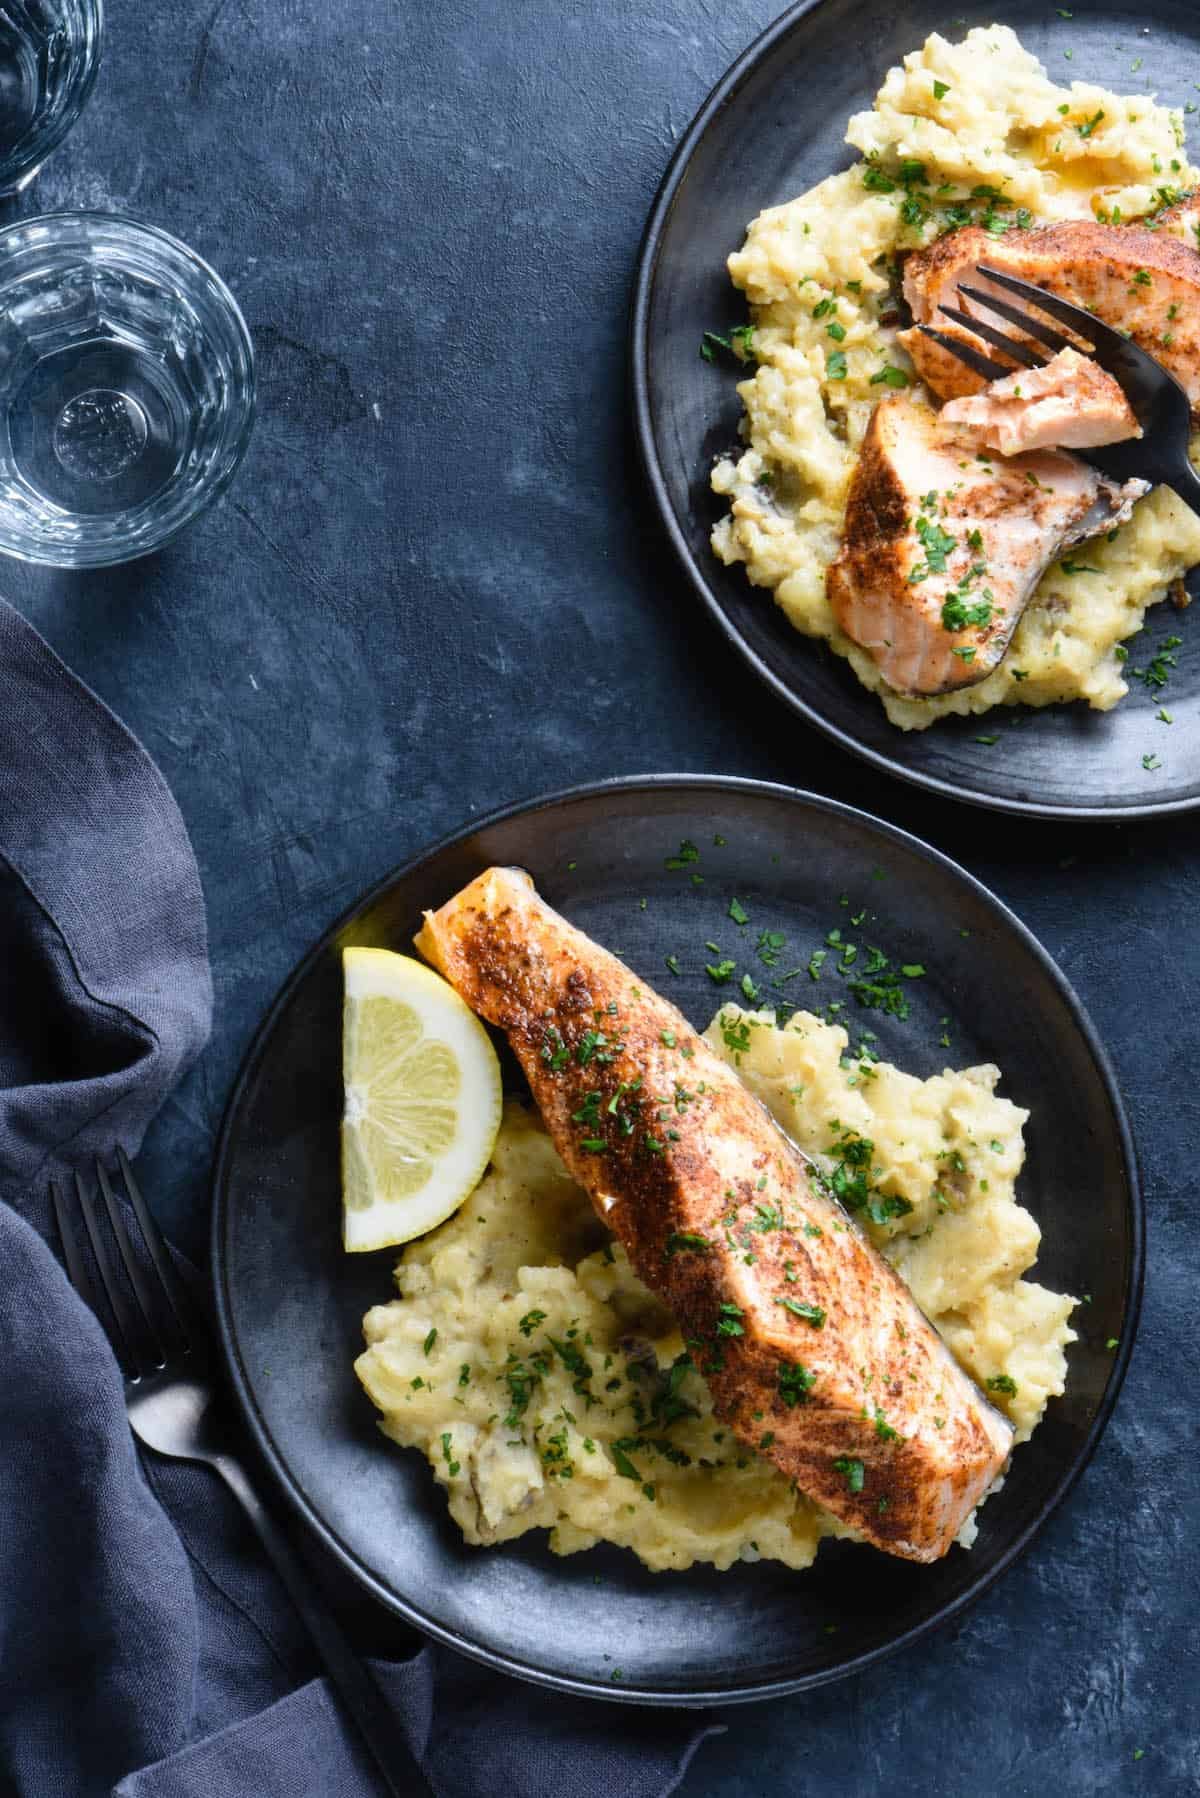 Dark background topped with two black plates. Plates are filled with instant pot salmon and mashed potatoes. Water glasses and napkin nearby.